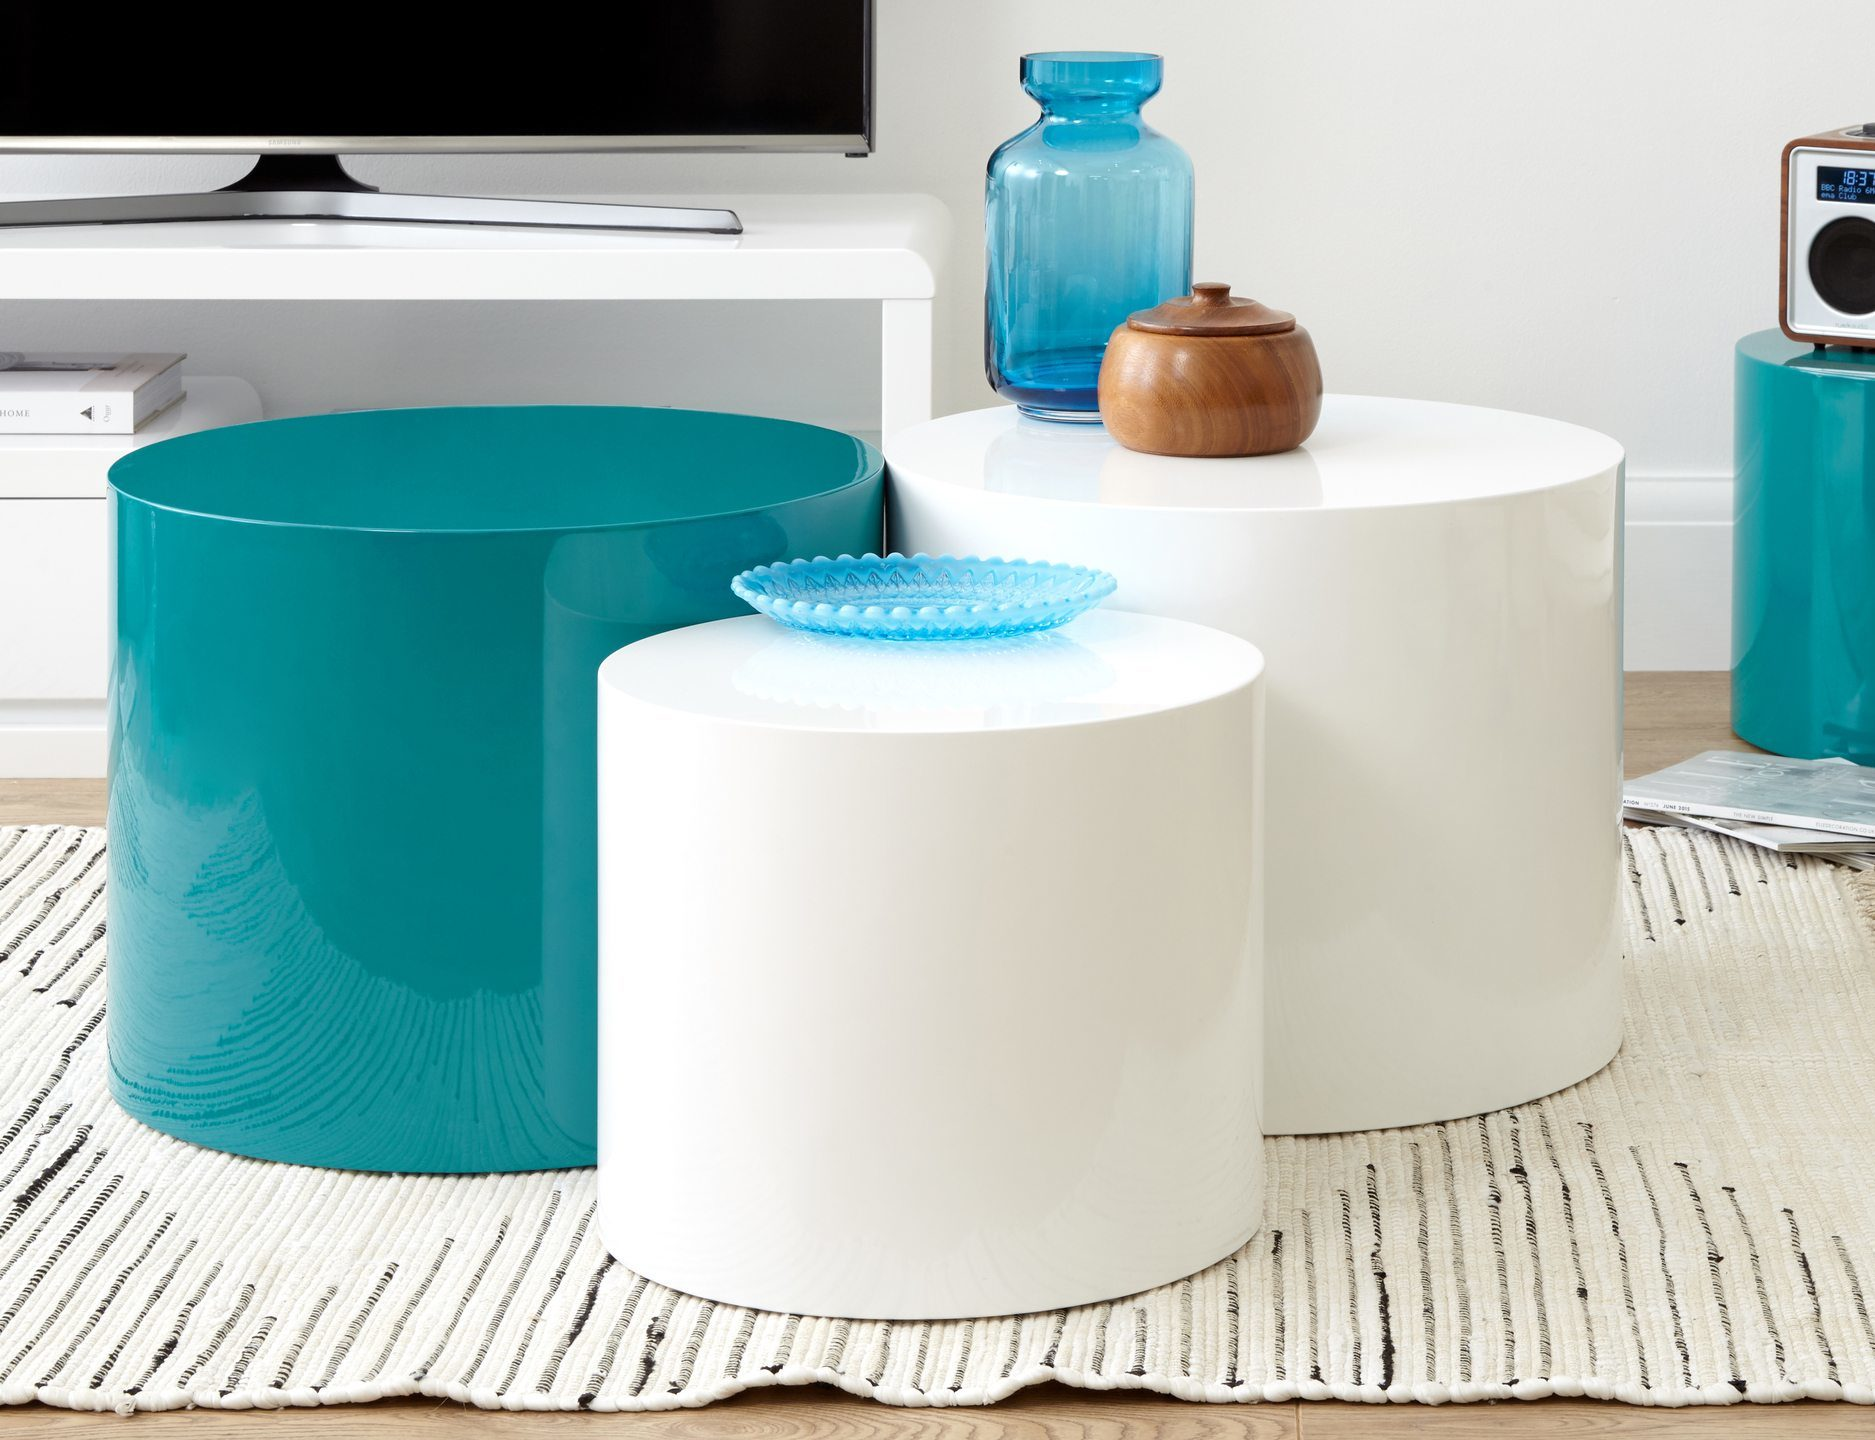 Pebble White Gloss and Teal Gloss Side Tables